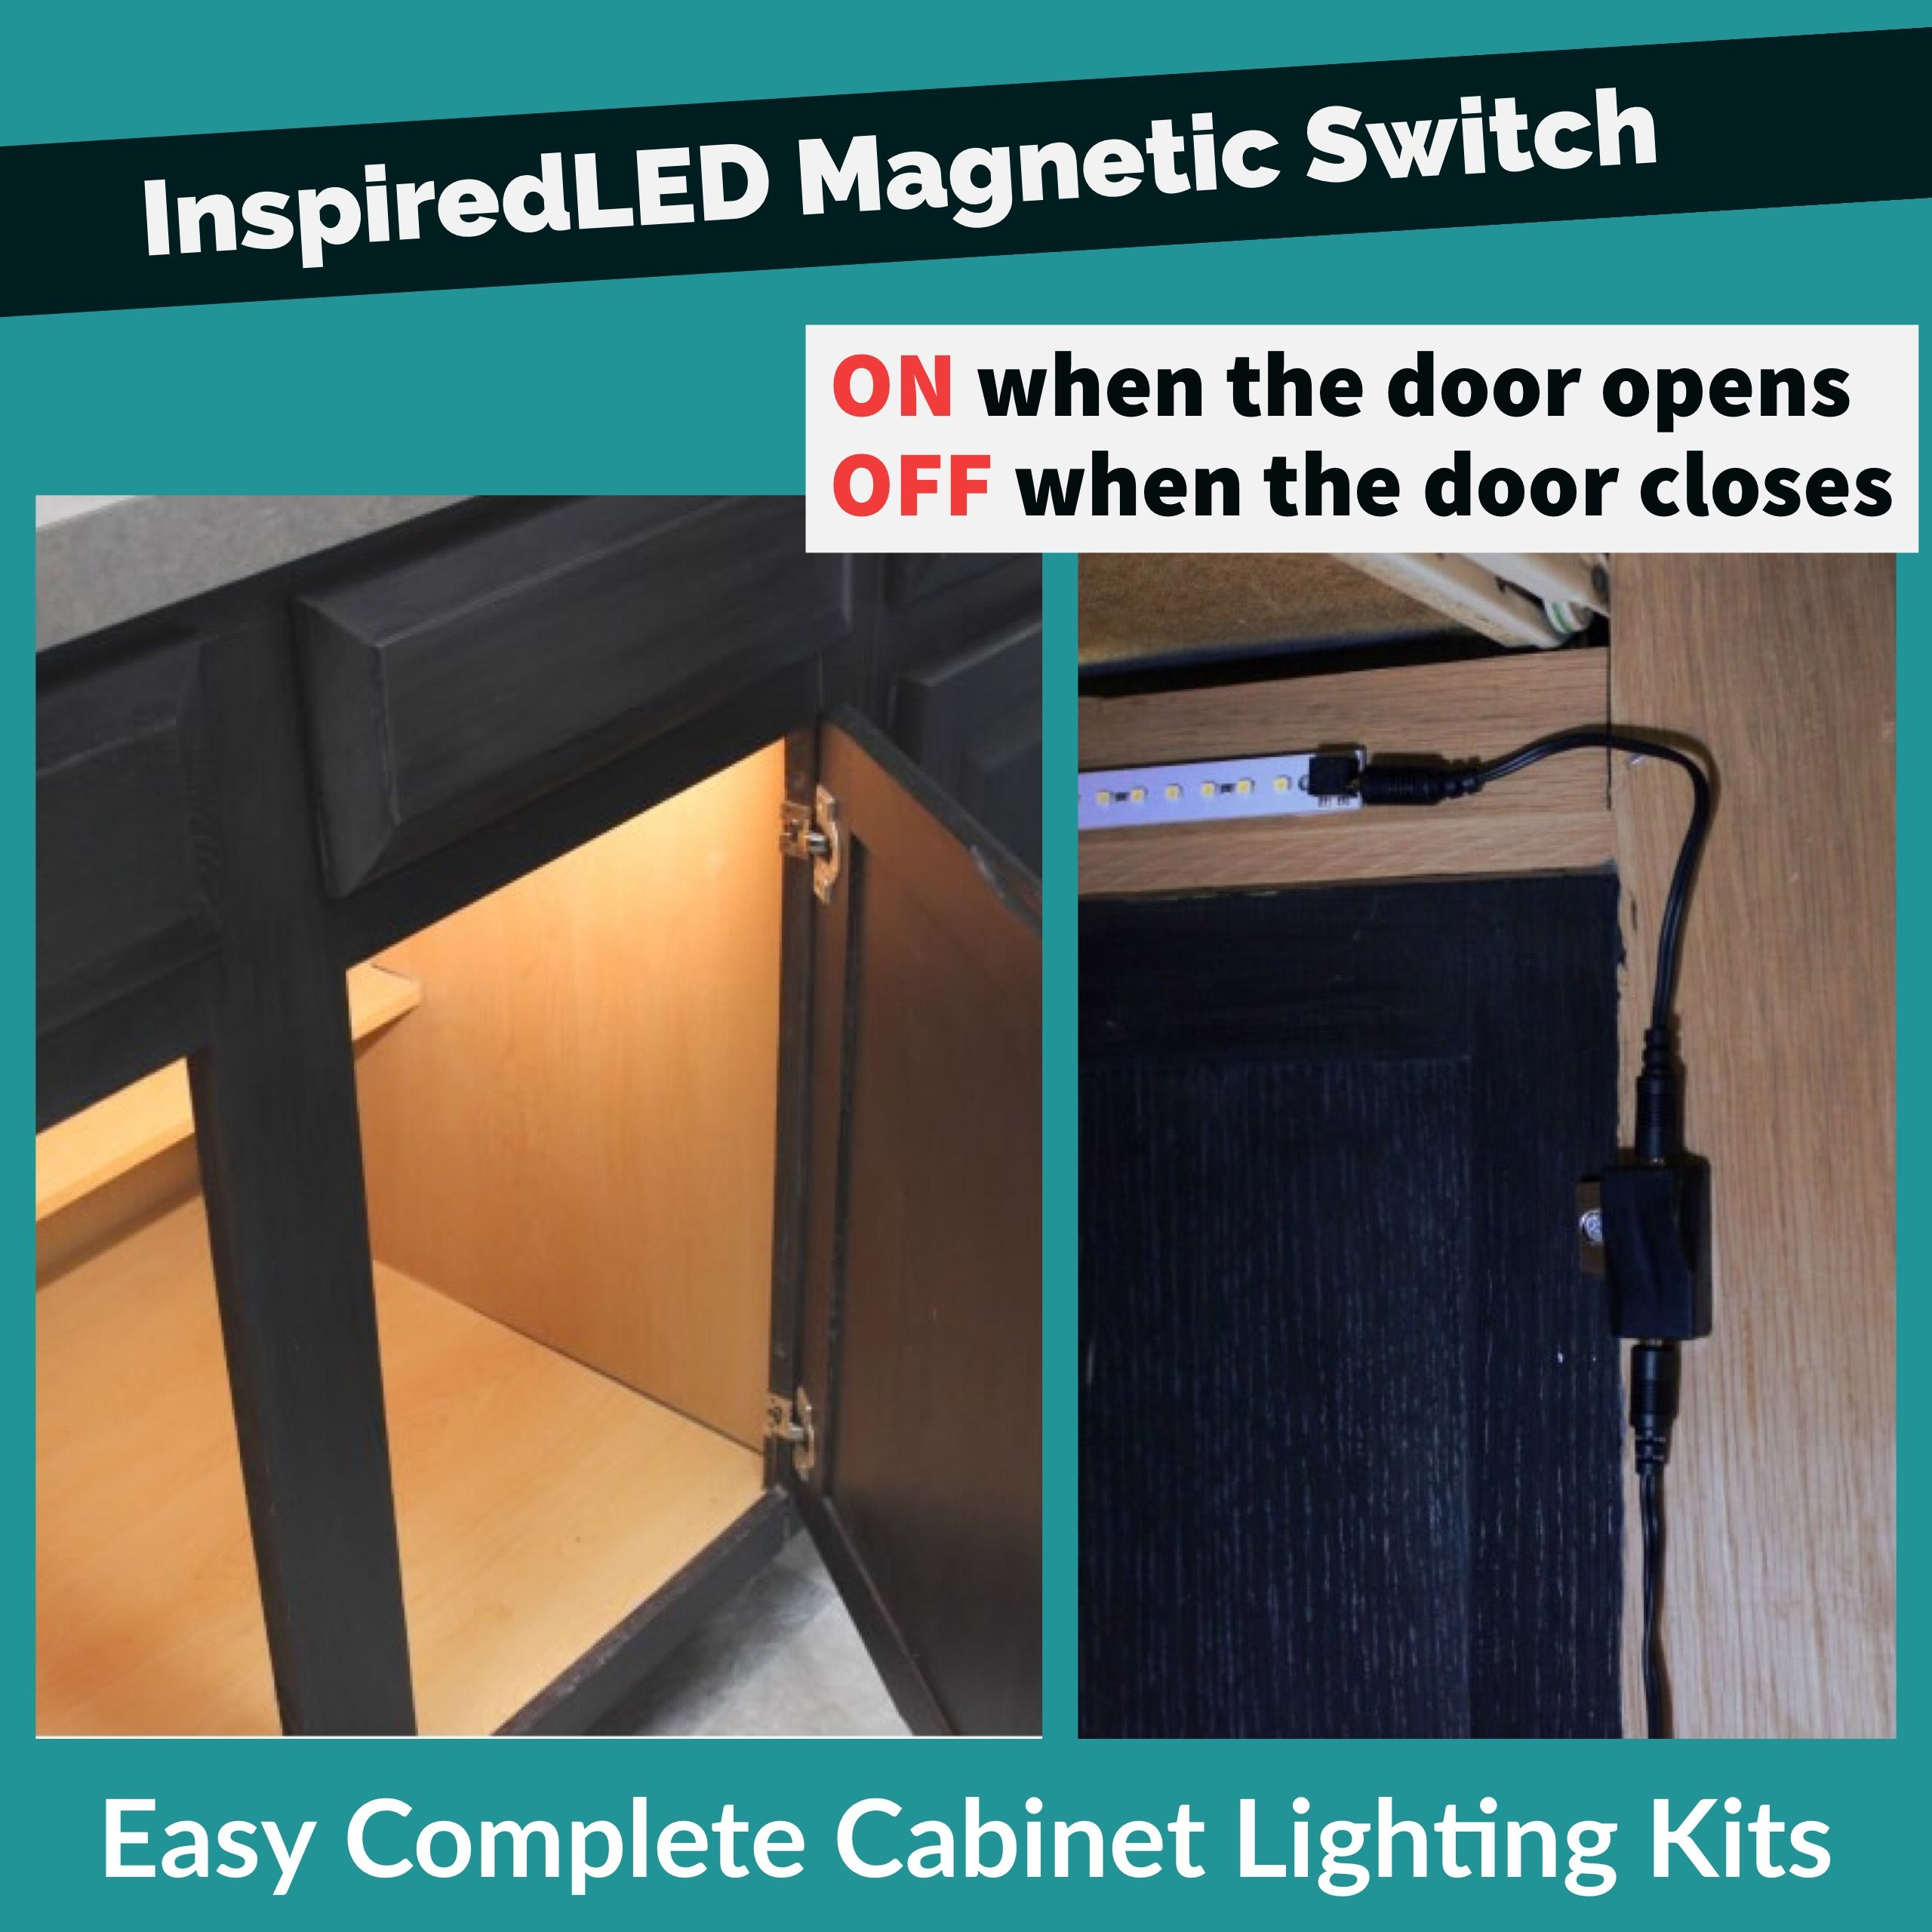 Inspiredled Magnetic Switch On When The Door Opens Off When The Door